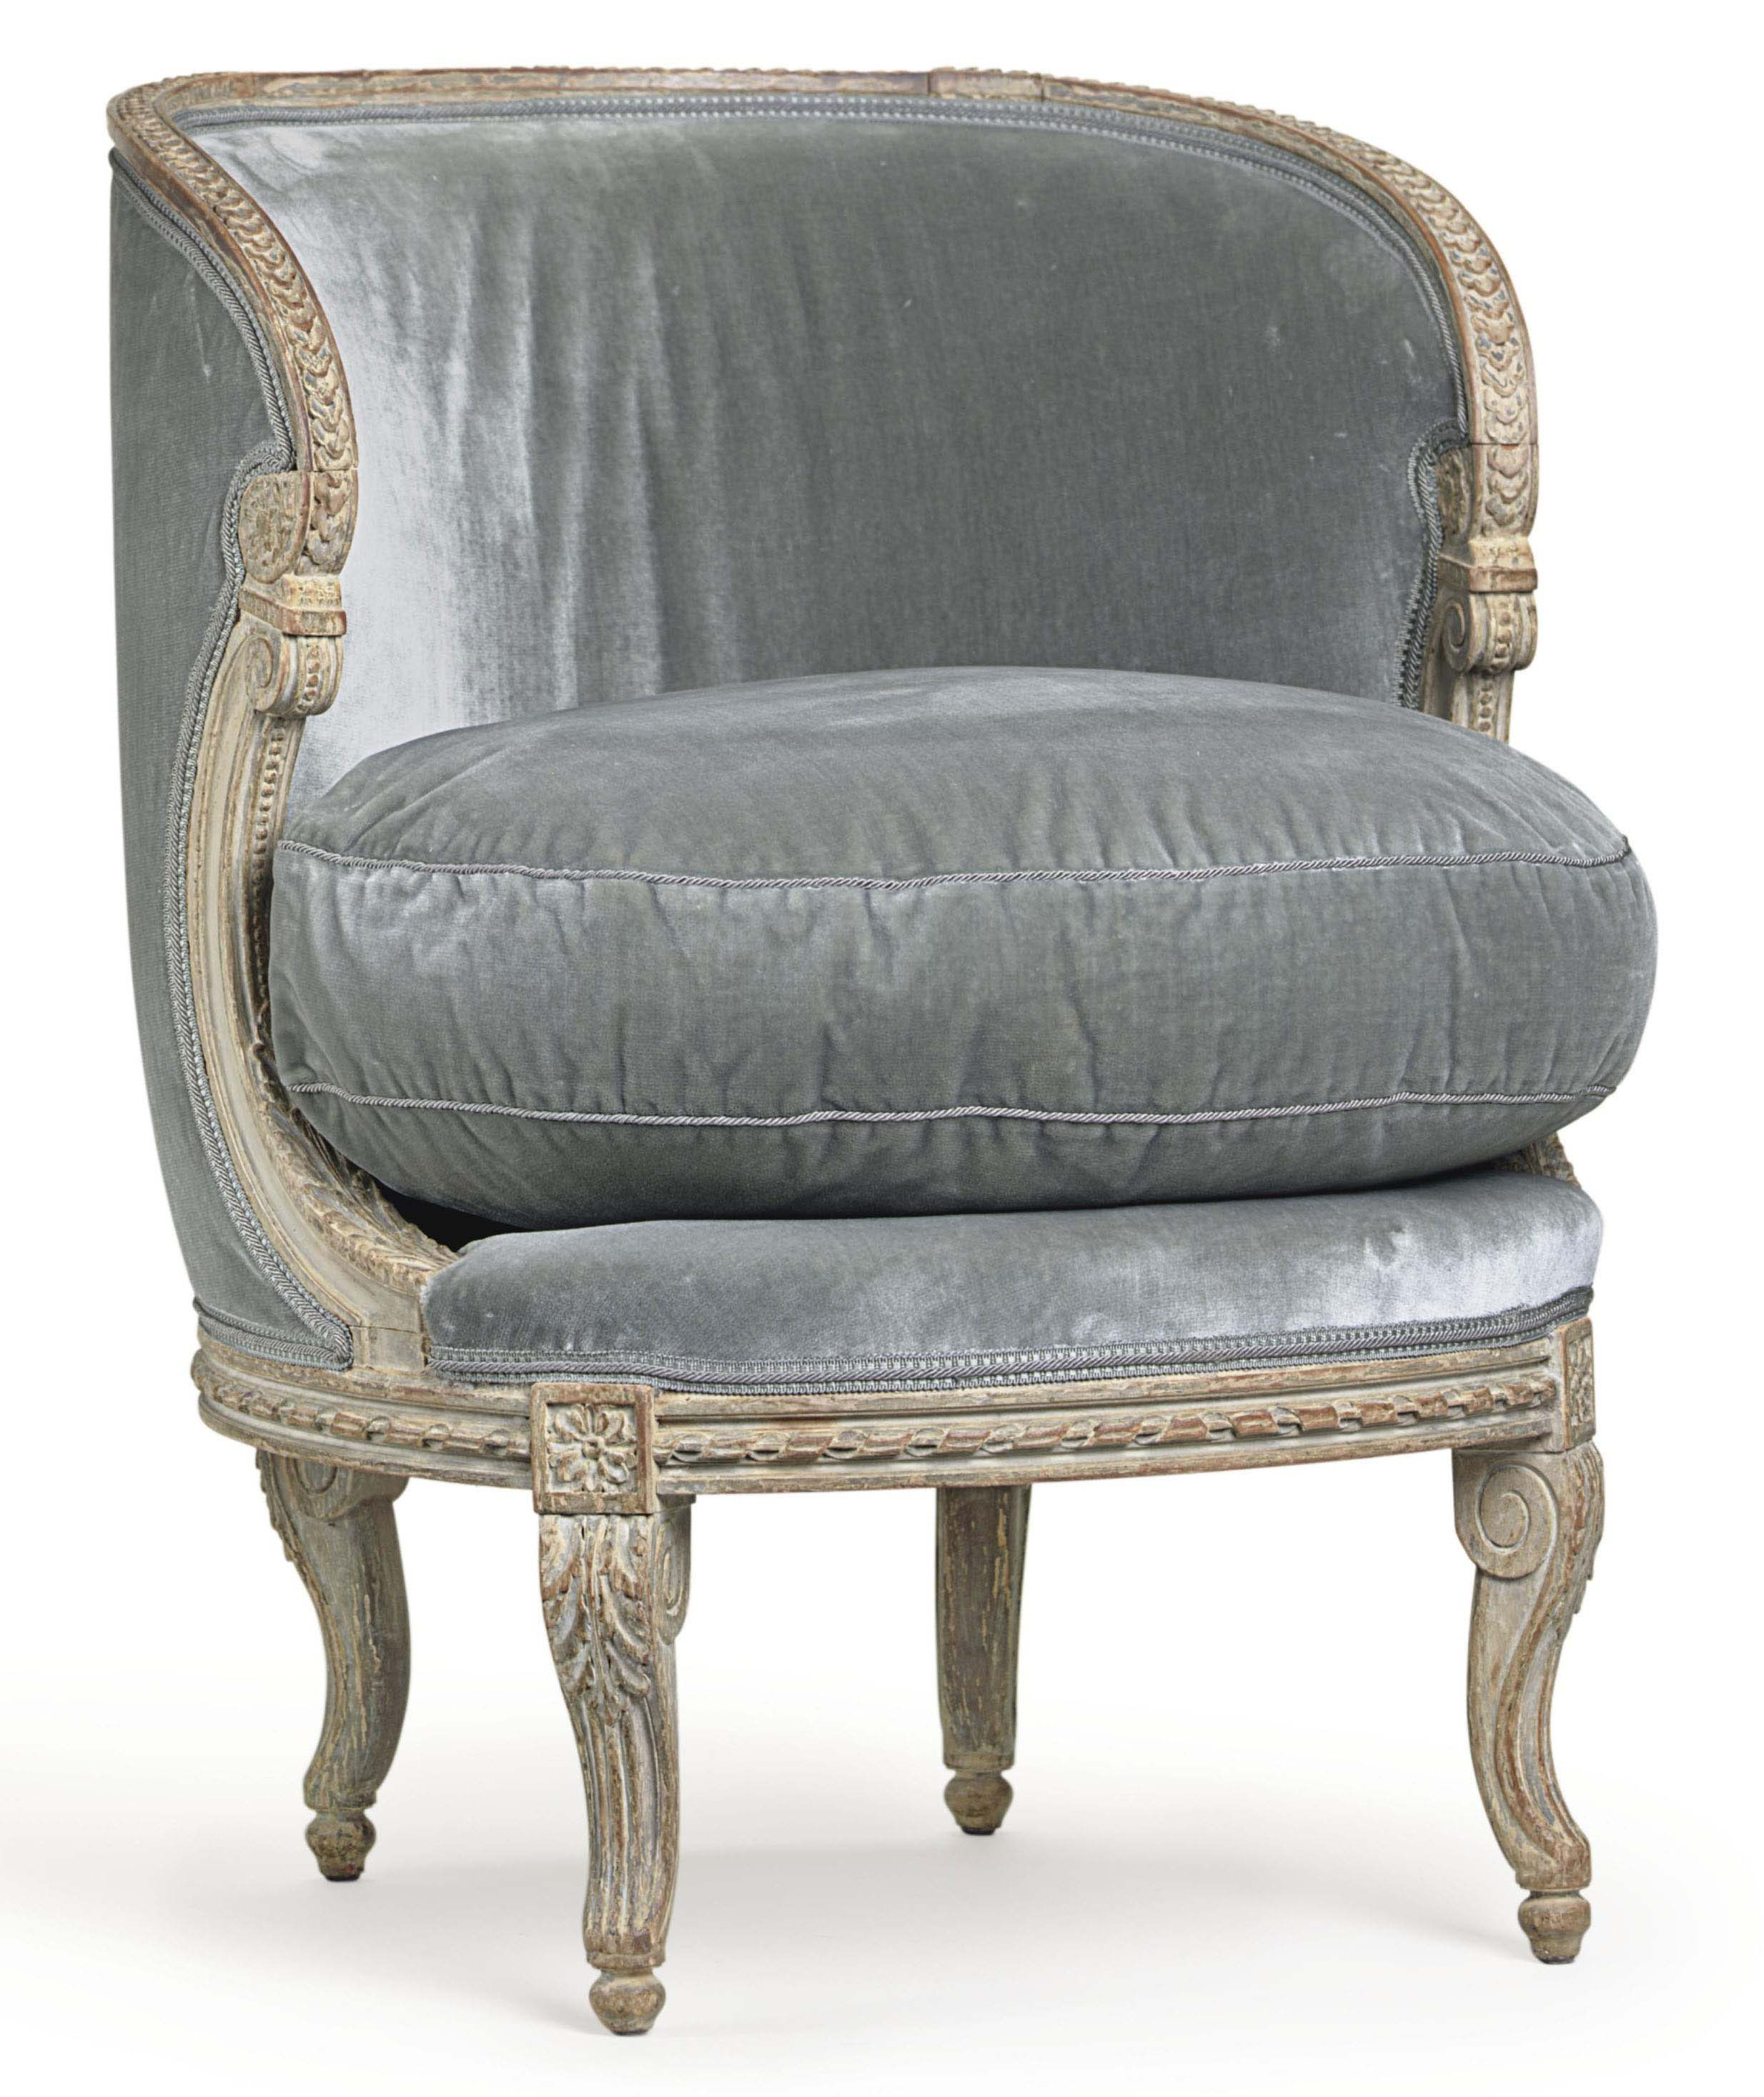 A FRENCH GREY-PAINTED BERGERE